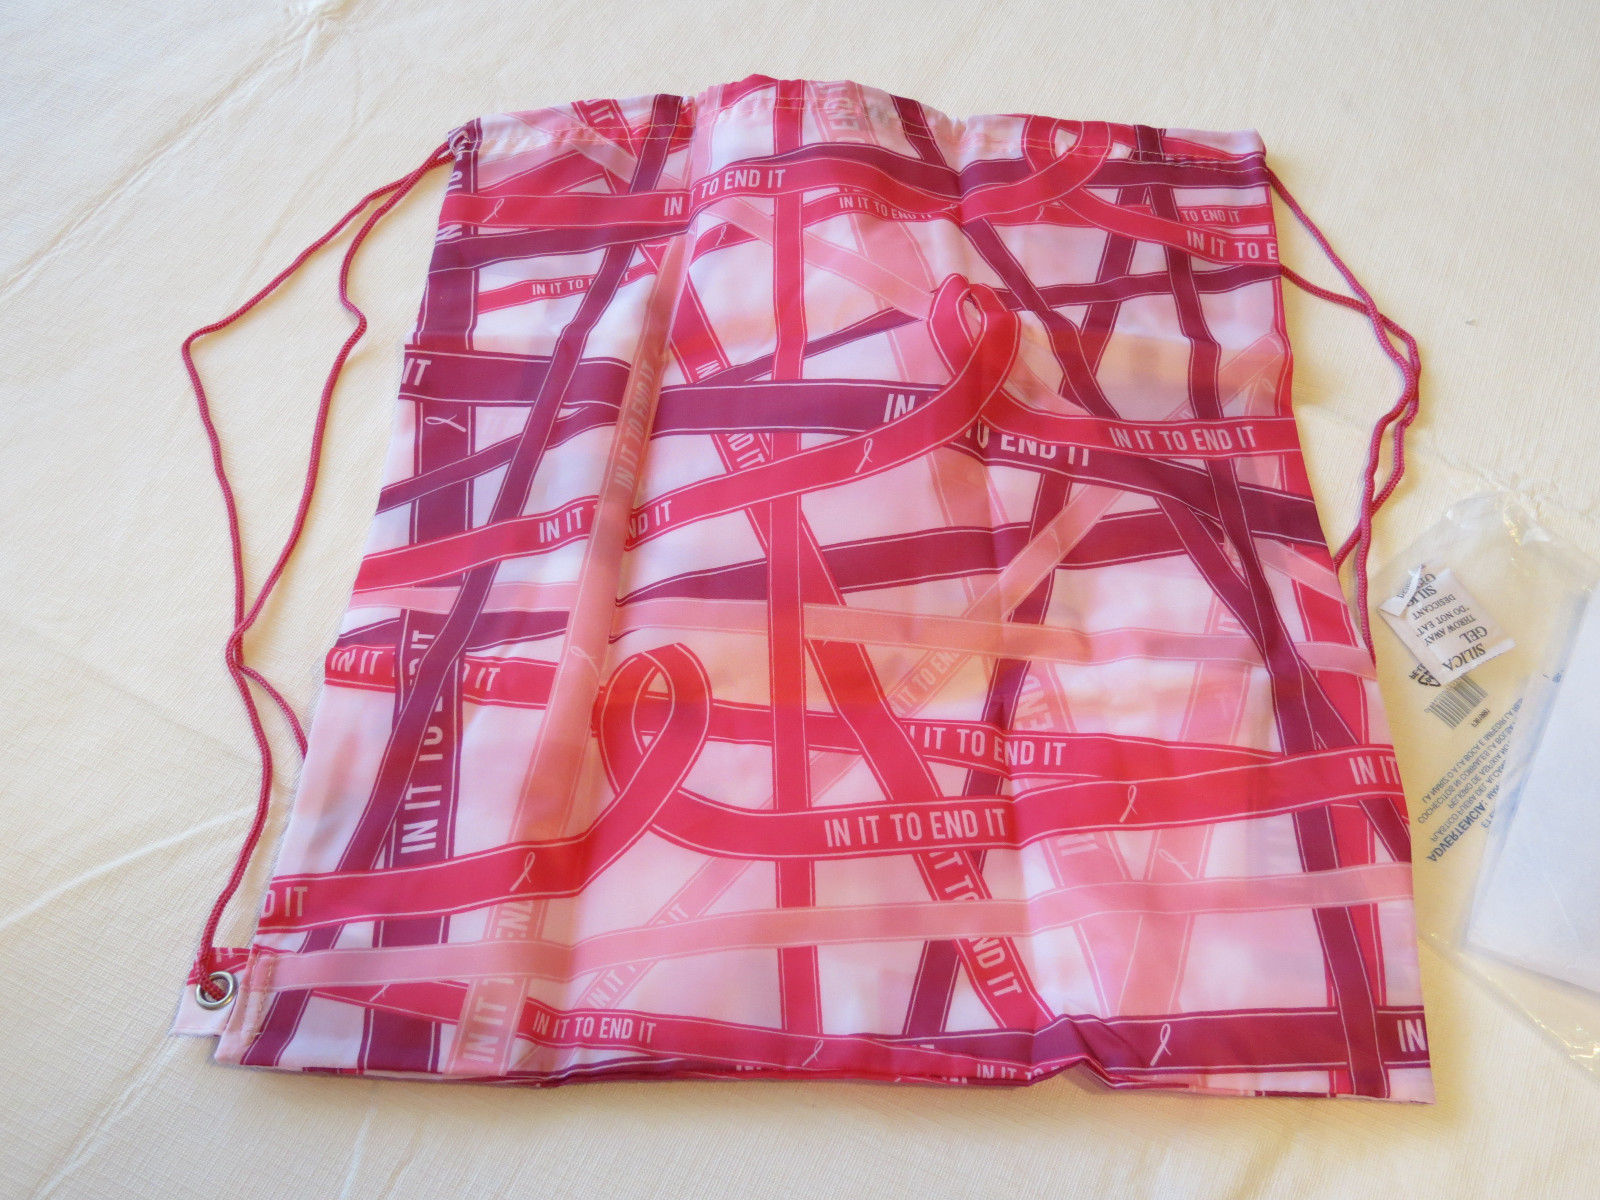 Avon Womens Ladies Breast Cancer Ribbons Backpack pinks light F3619881 NEW;; image 2